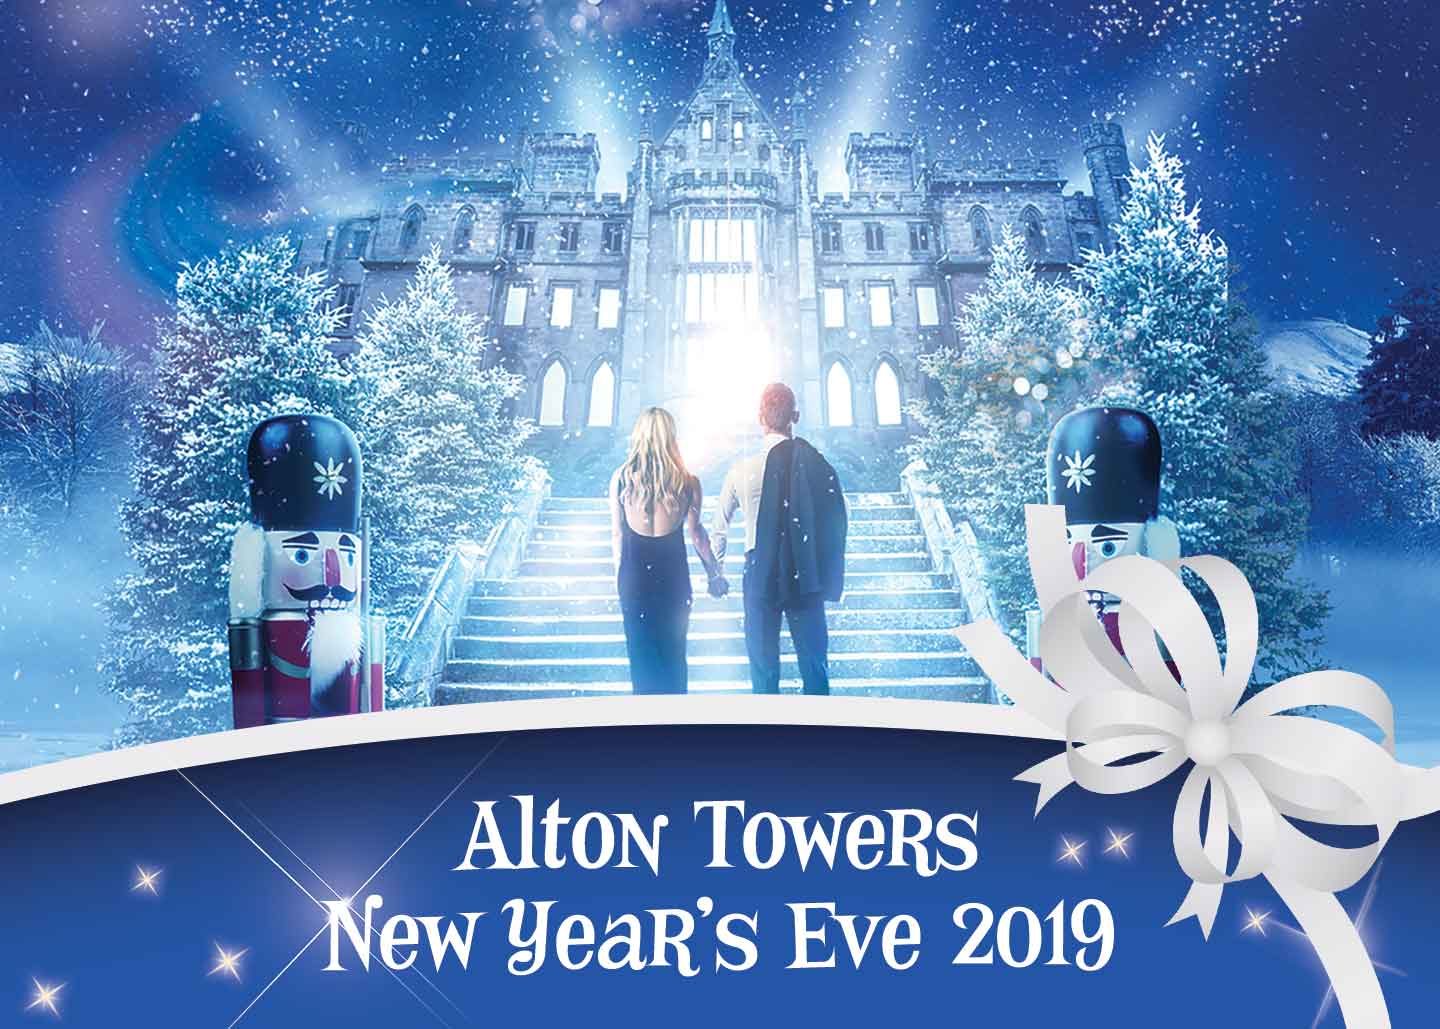 Ultimate 2019 New Year's Family Celebration at Alton Towers Resort